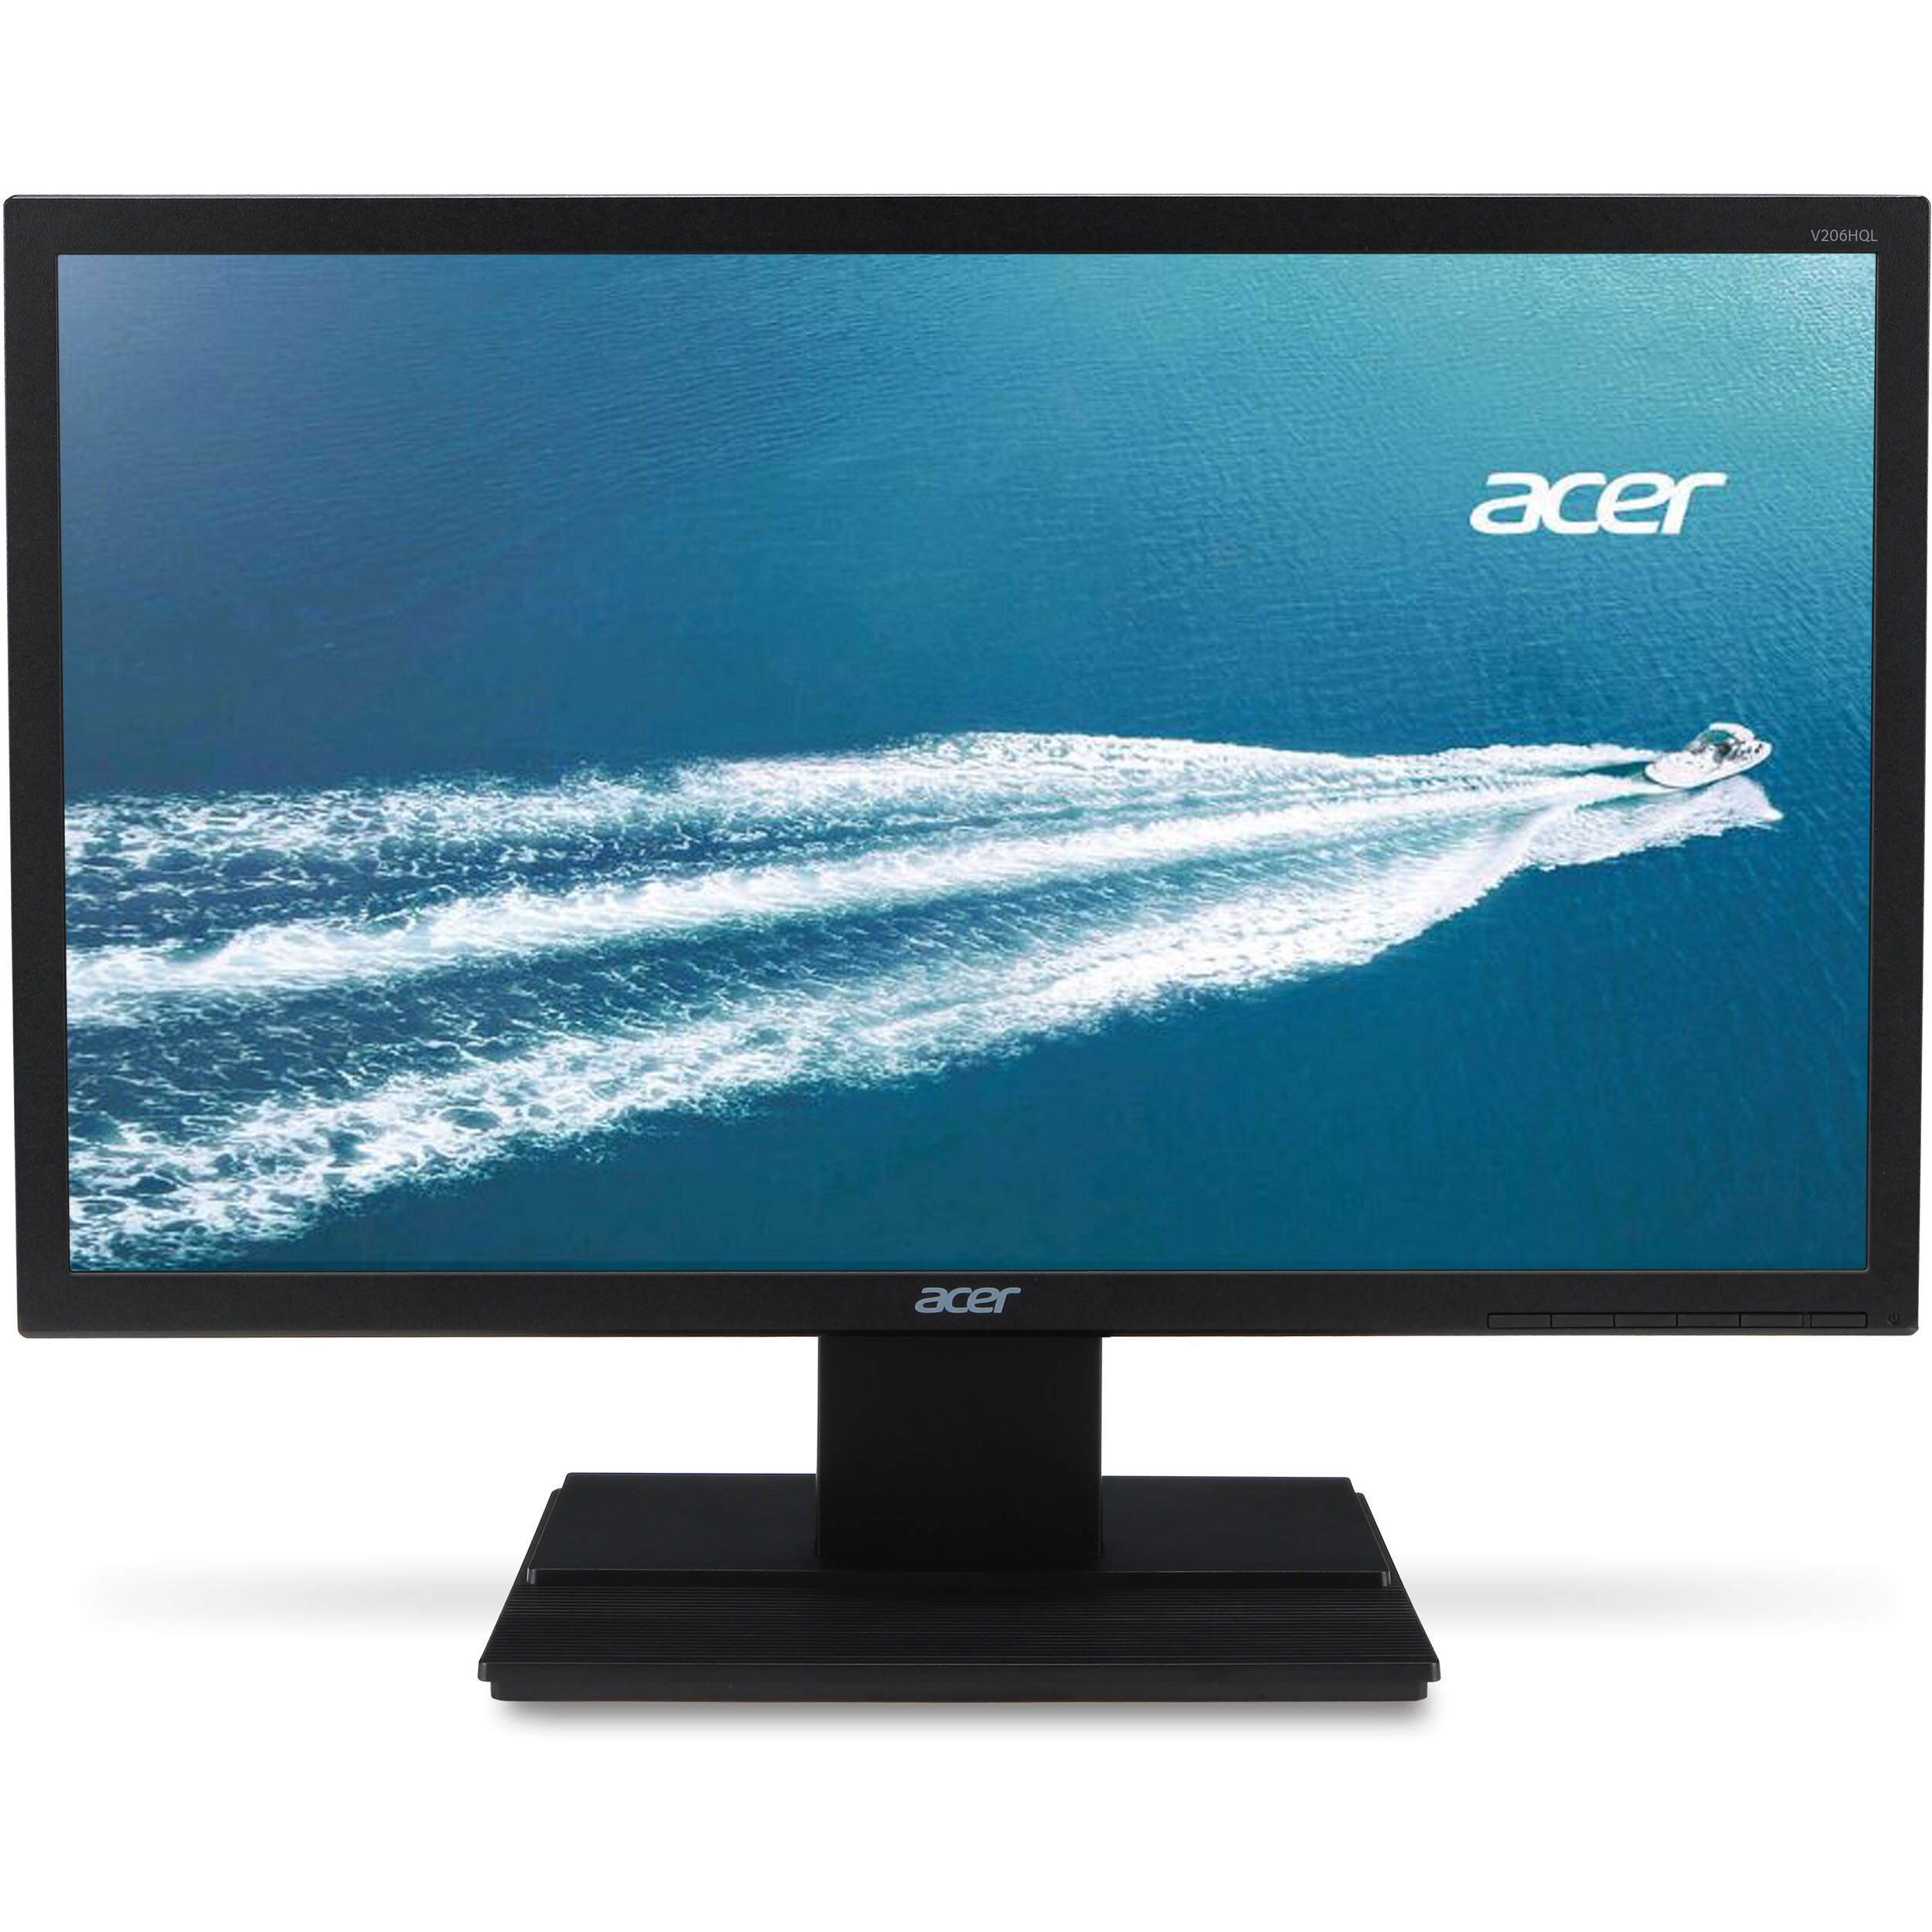 "Acer 19.5"" Widescreen LCD Monitor Display Full HD 1920 x 1080 8 ms 0"